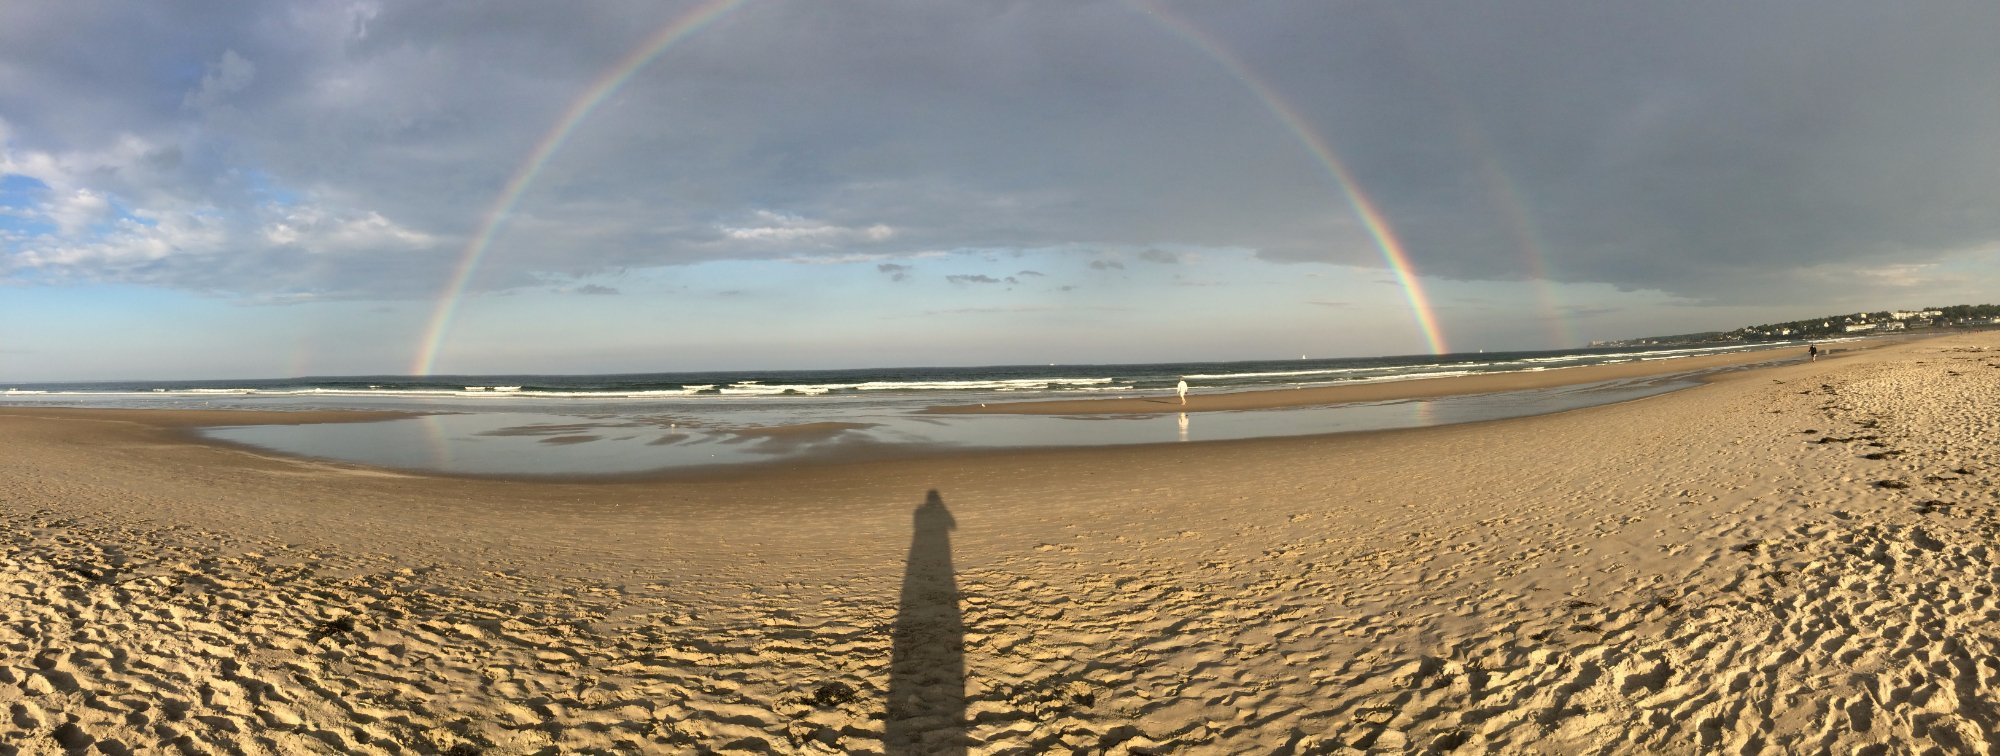 Perfect walking beach. Once in a while you see a beautiful arch rainbow. Magic